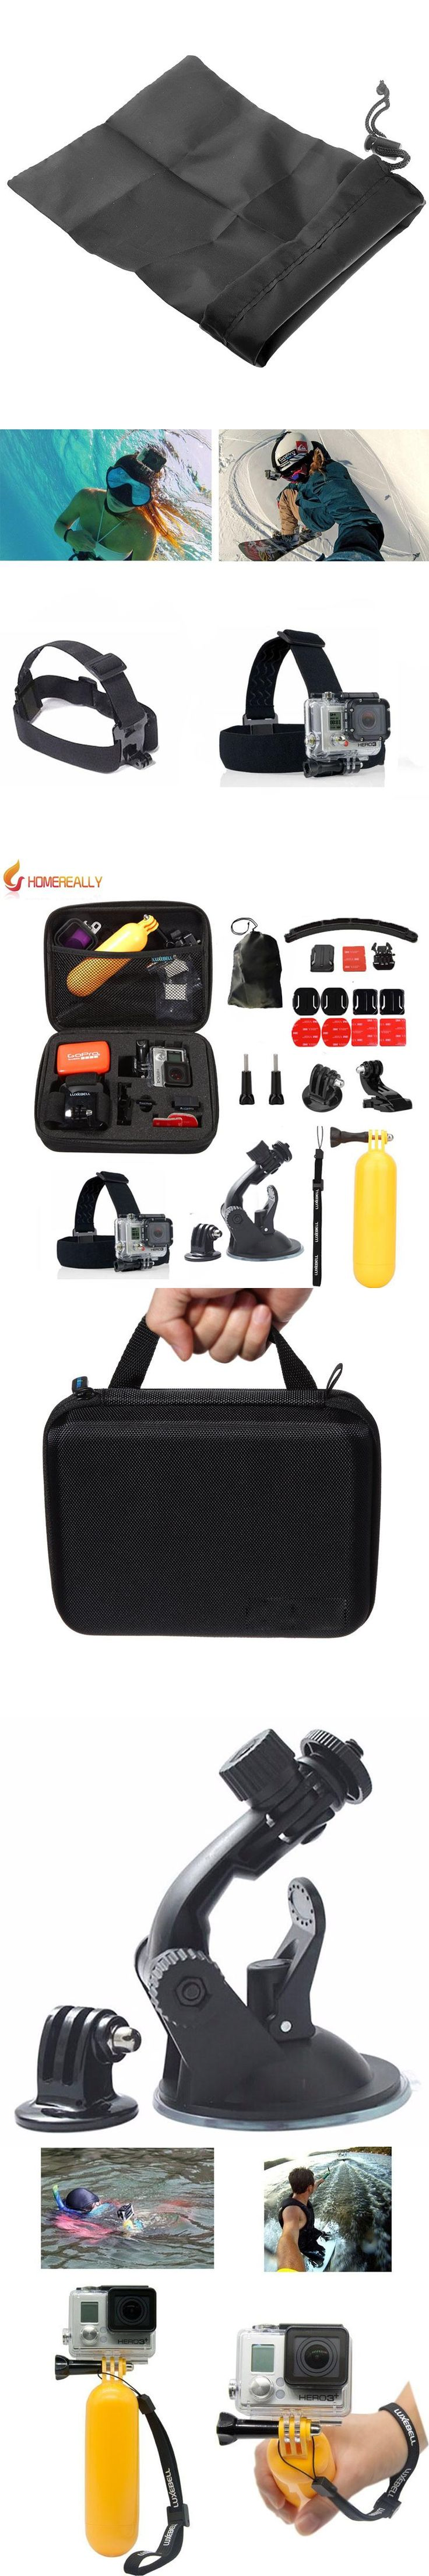 Gopro Accessories Set Go Pro Kit Mount Black Edition SJCAM SJ5000 Camera Case Xiao Yi Chest Tripod For SJ4000 Gopro Hero 5 4 3 2